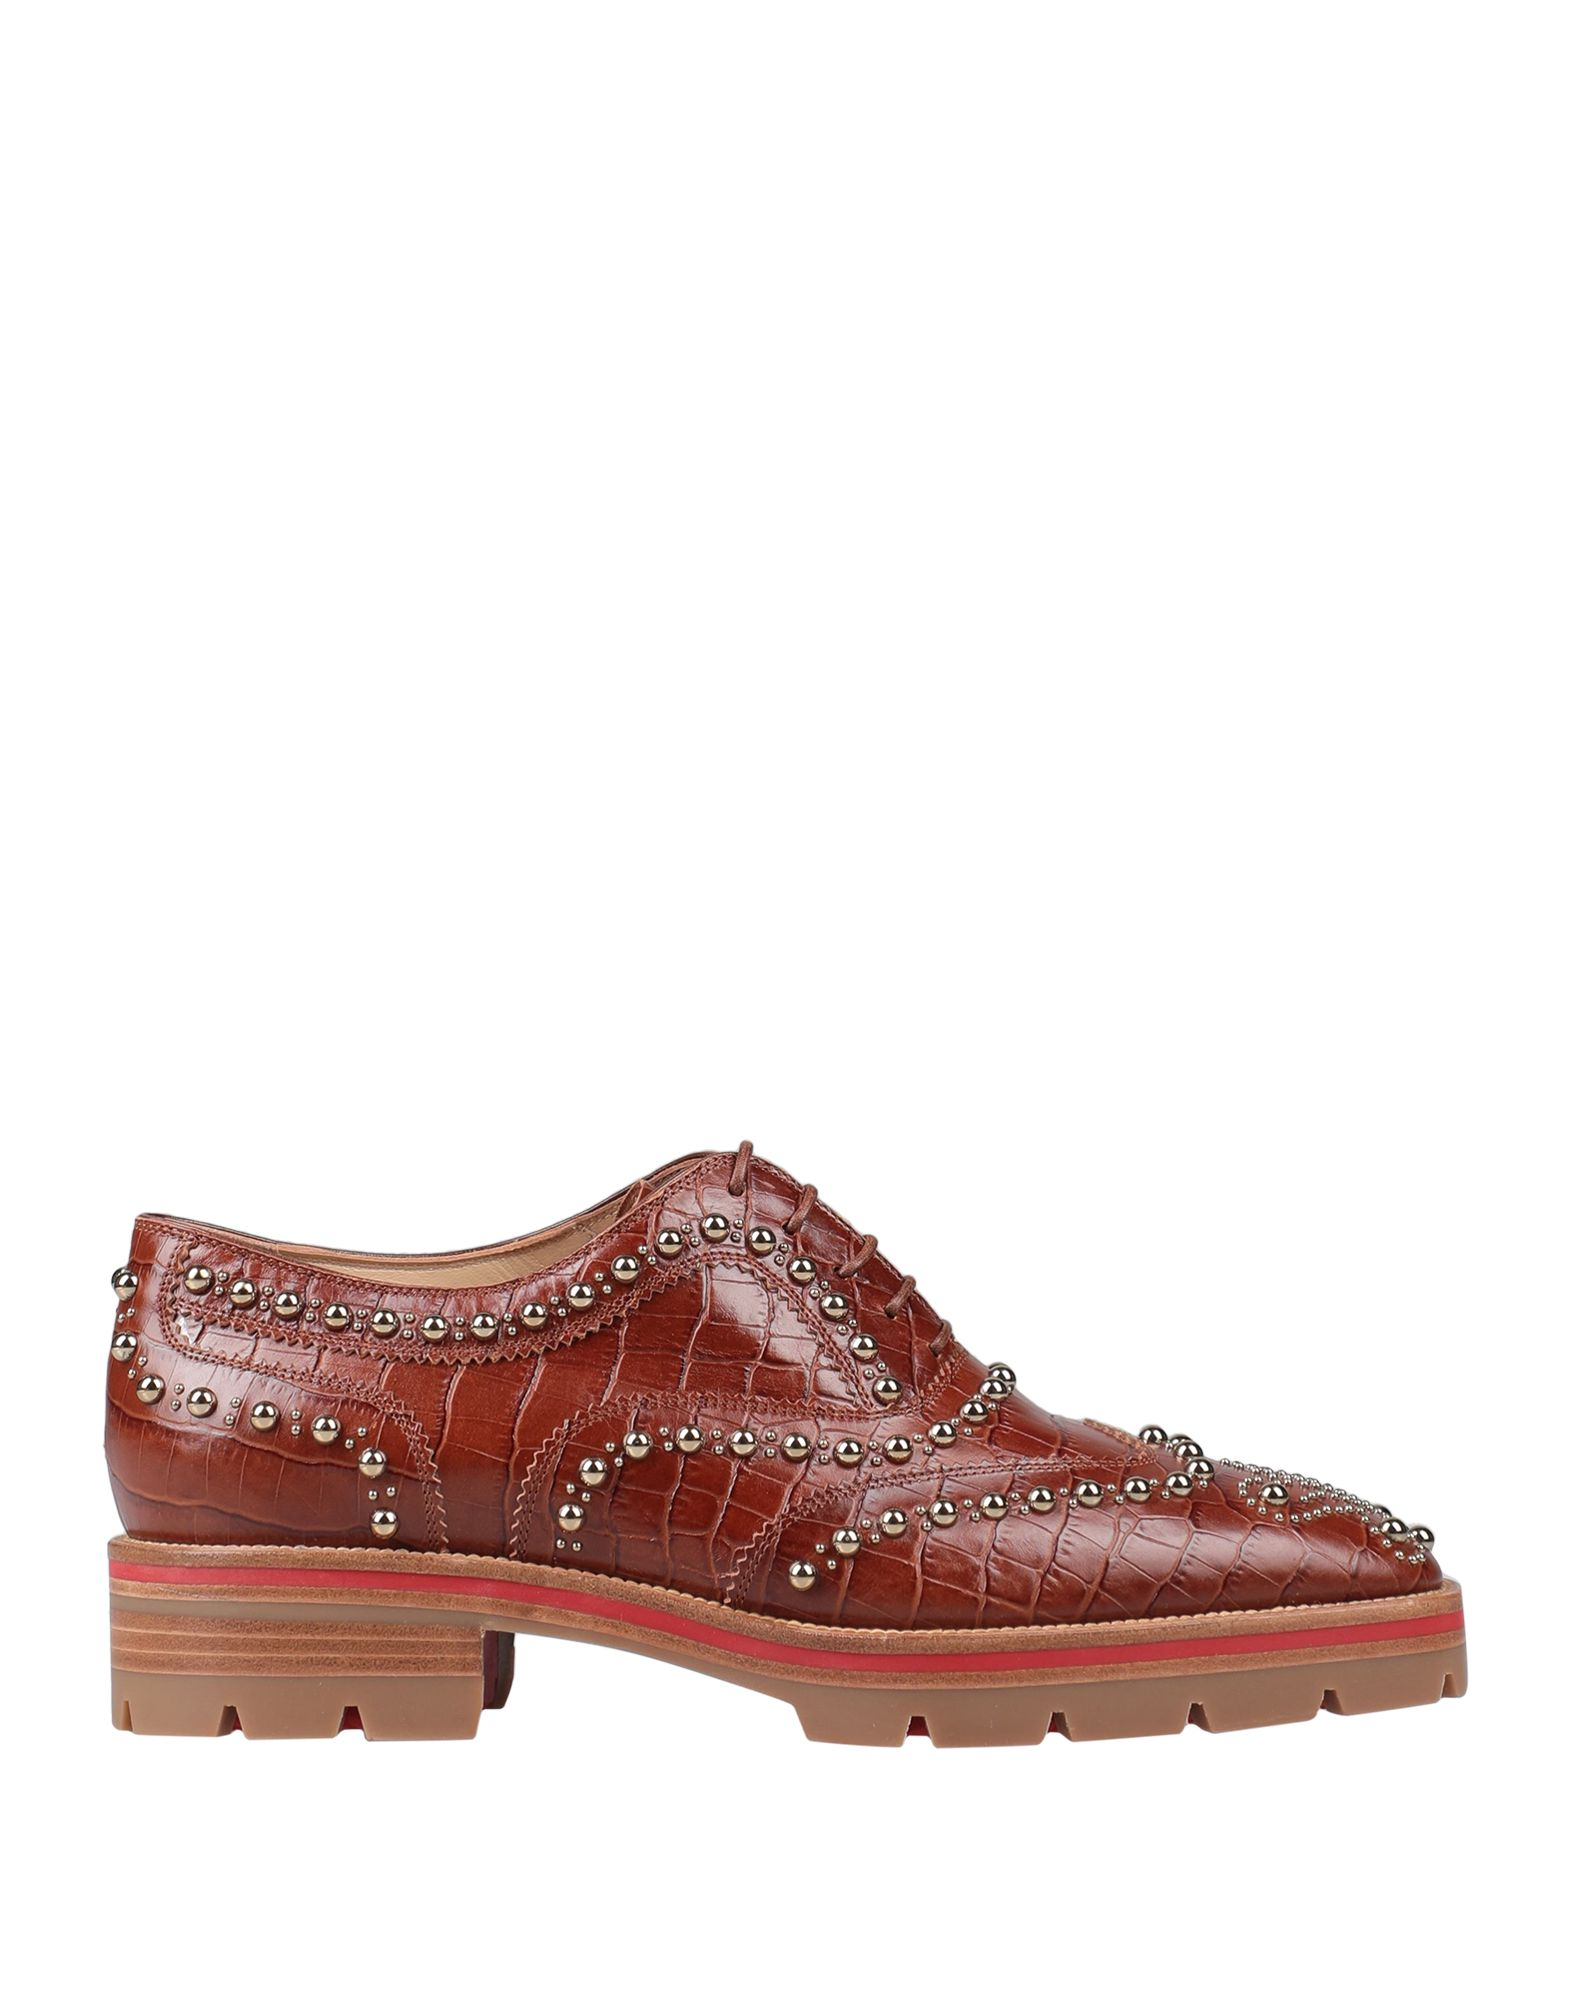 CHRISTIAN LOUBOUTIN Lace-up shoes. leather, crocodile print, studs, solid color, round toeline, square heel, leather lining, rubber cleated sole, contains non-textile parts of animal origin, small sized. Soft Leather